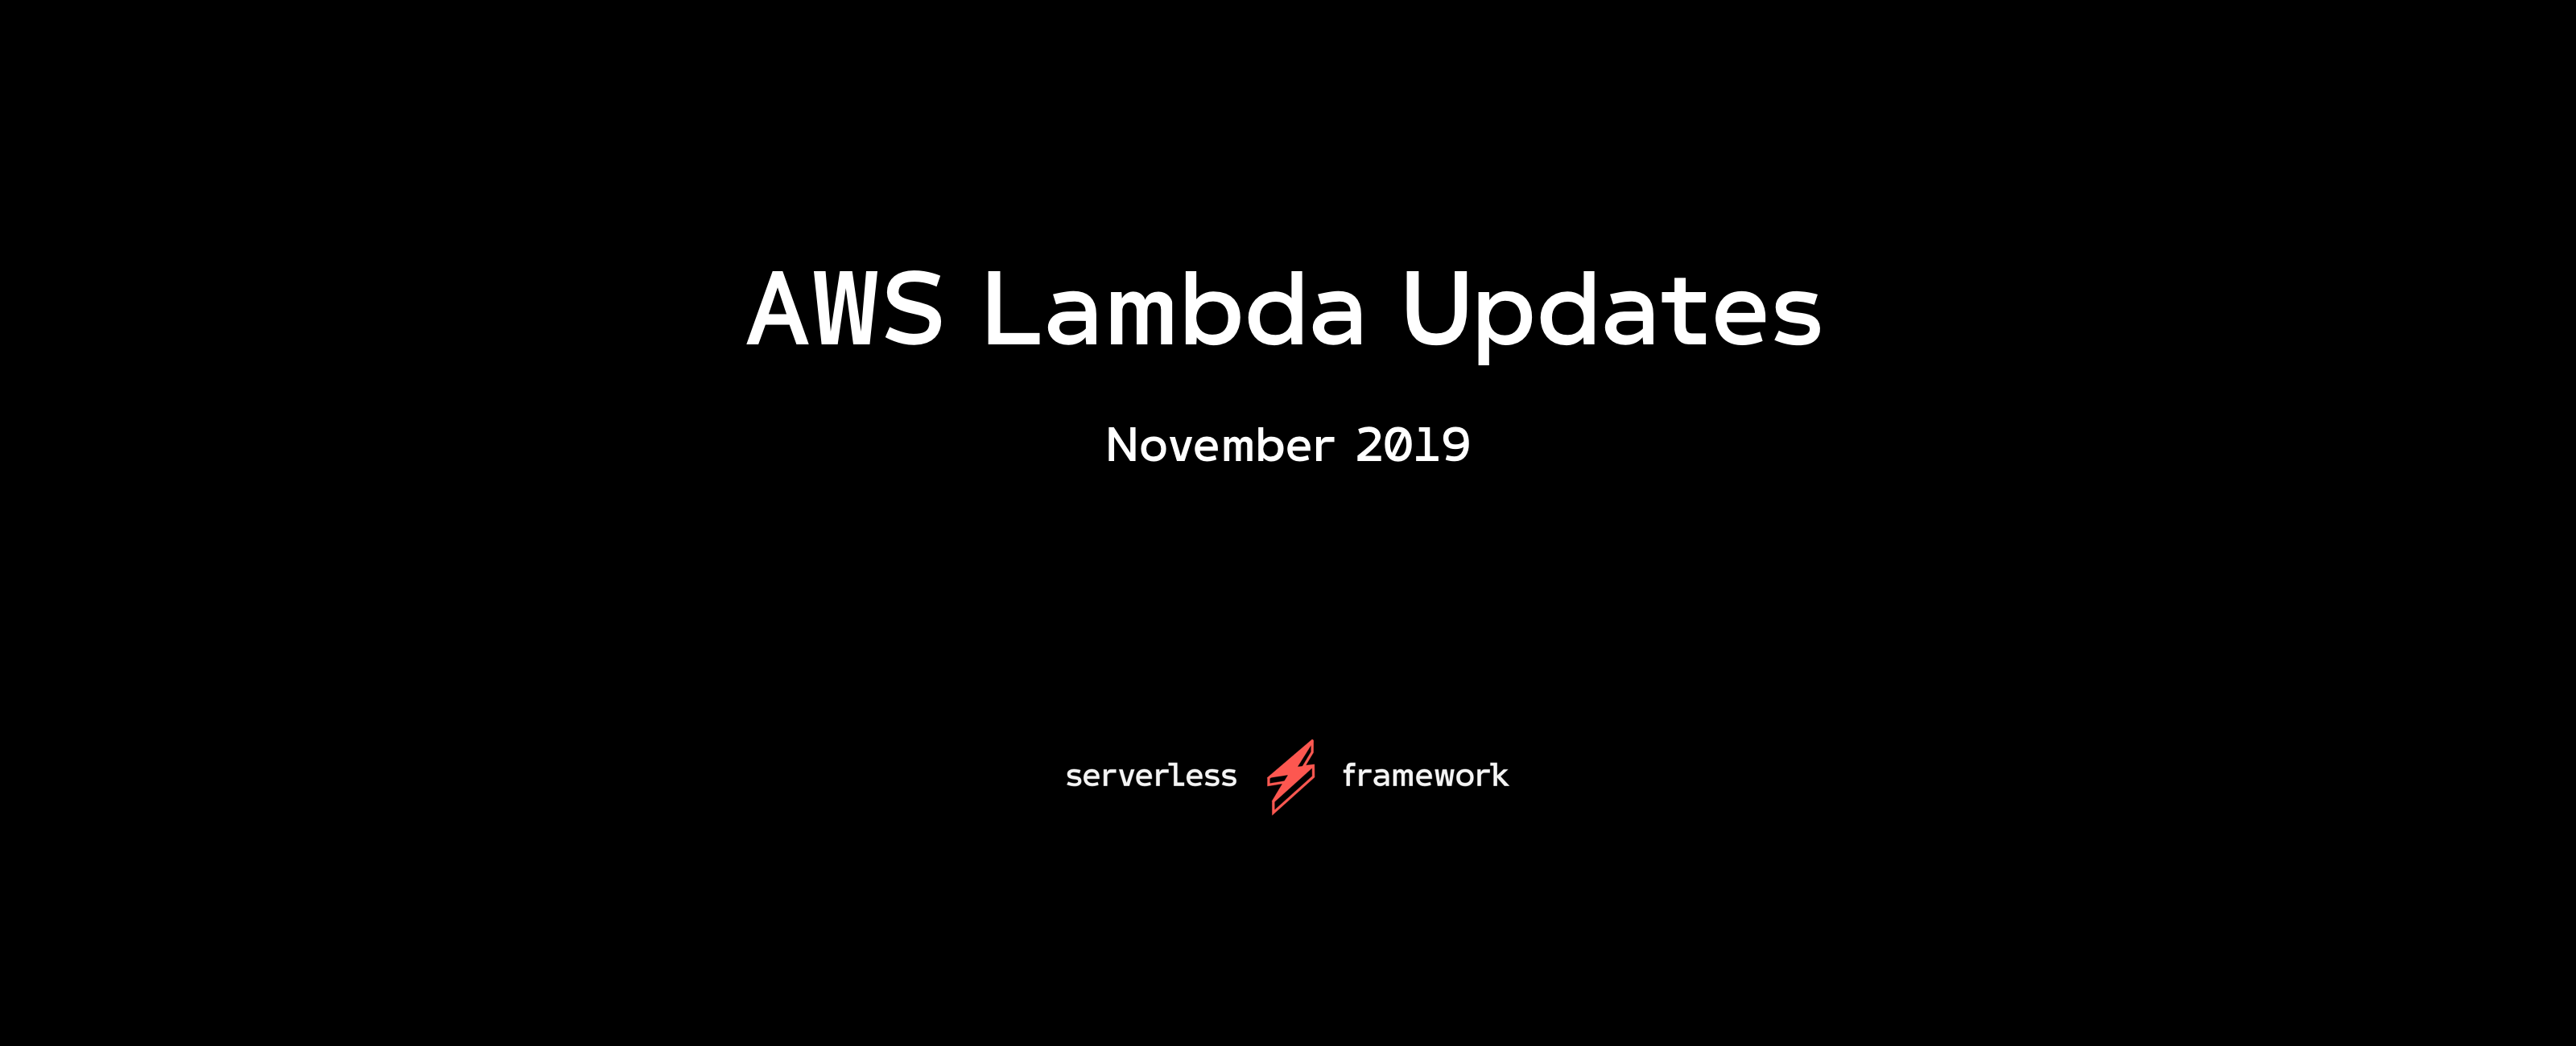 November 2019 - New AWS Lambda Features